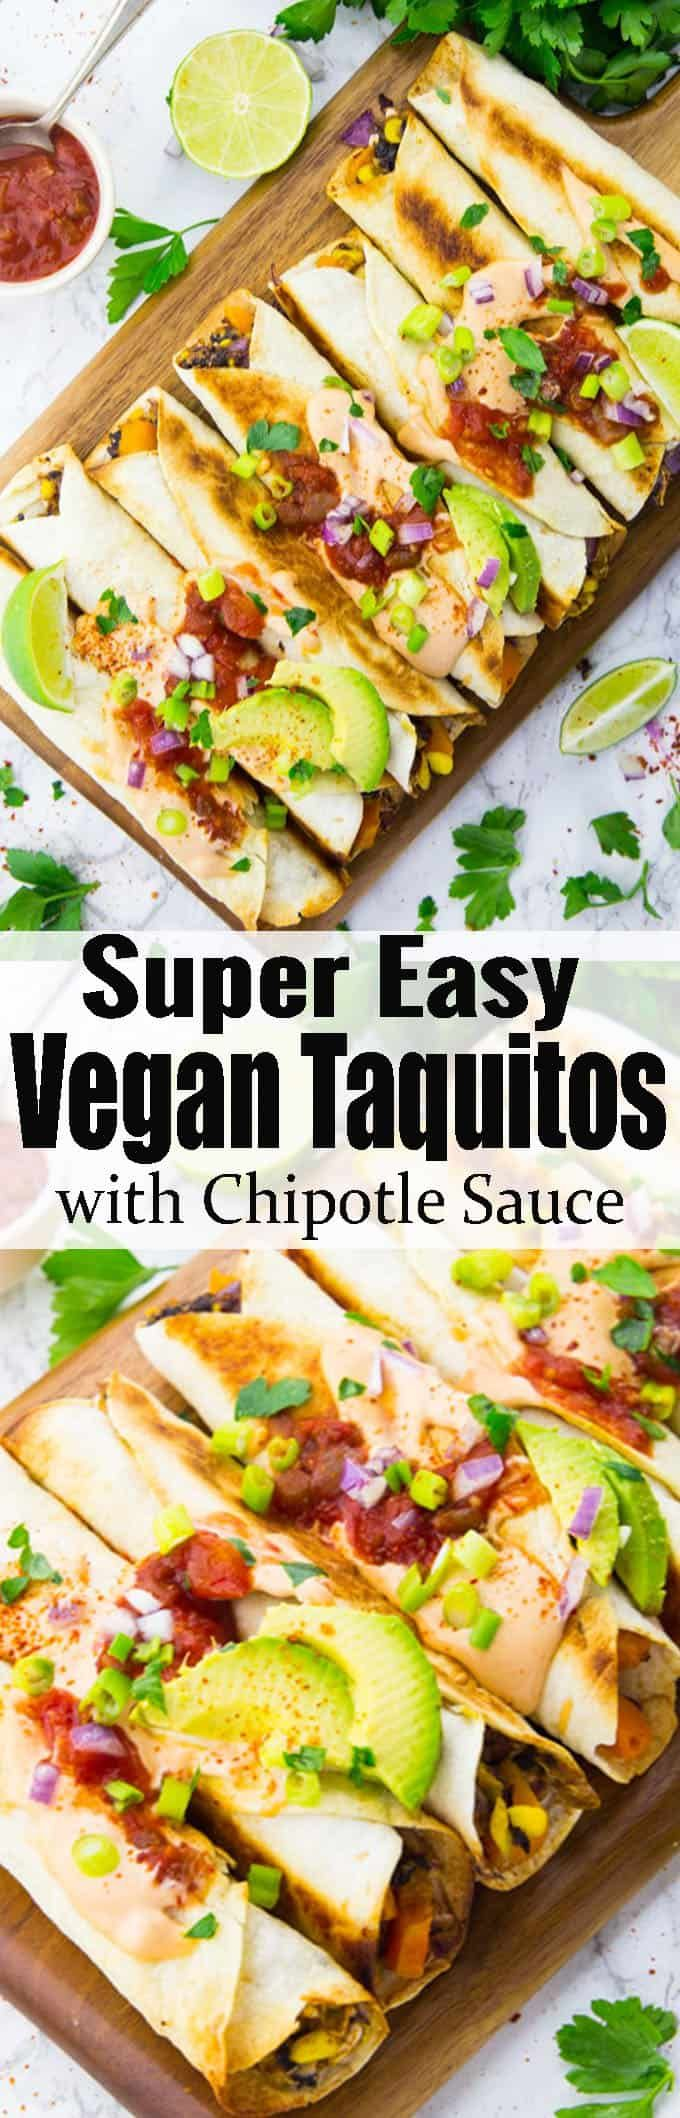 If you like Mexican food, you will LOVE these vegan taquitos with chipotle sauce! They're pure comfort food! And they make such a great vegan dinner. Find more vegan recipe ideas on veganheaven.org!